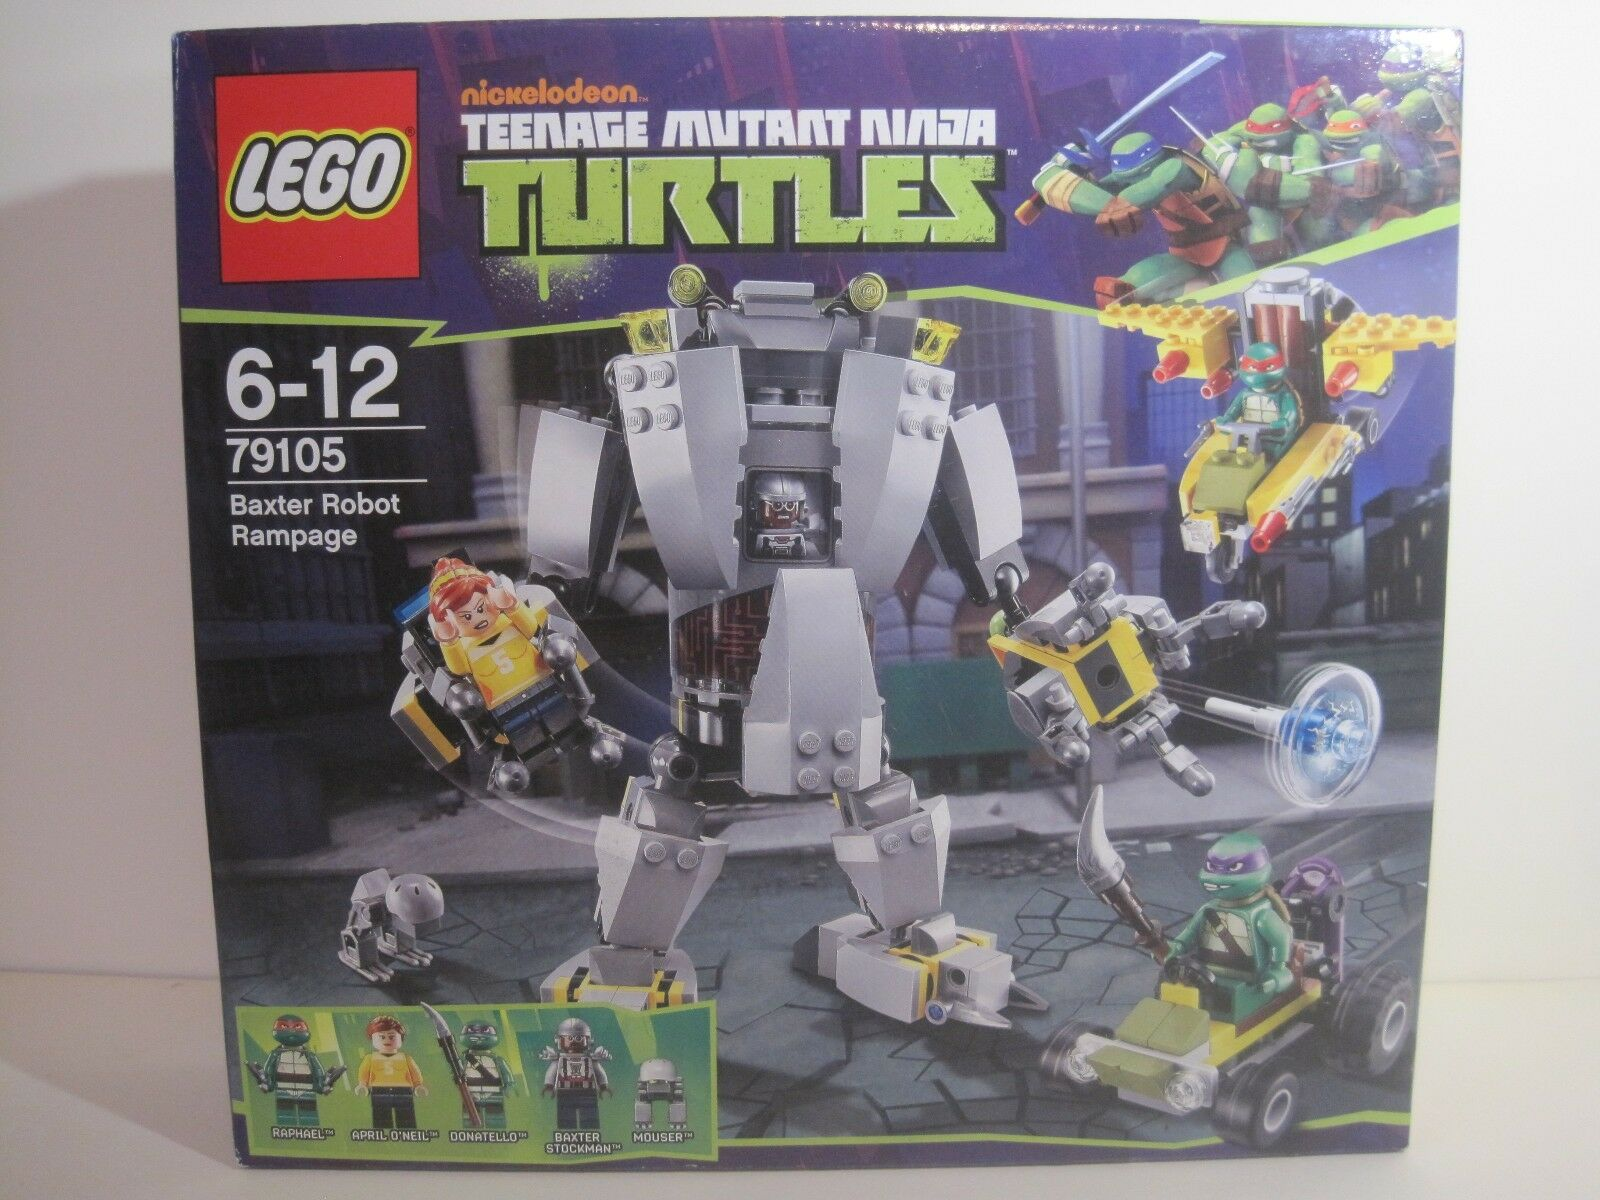 Lego Teenage Teenage Teenage Mutant Ninja Turtles (79105) BAXTER ROBOT RAMPAGE (New & Sealed) b700a5